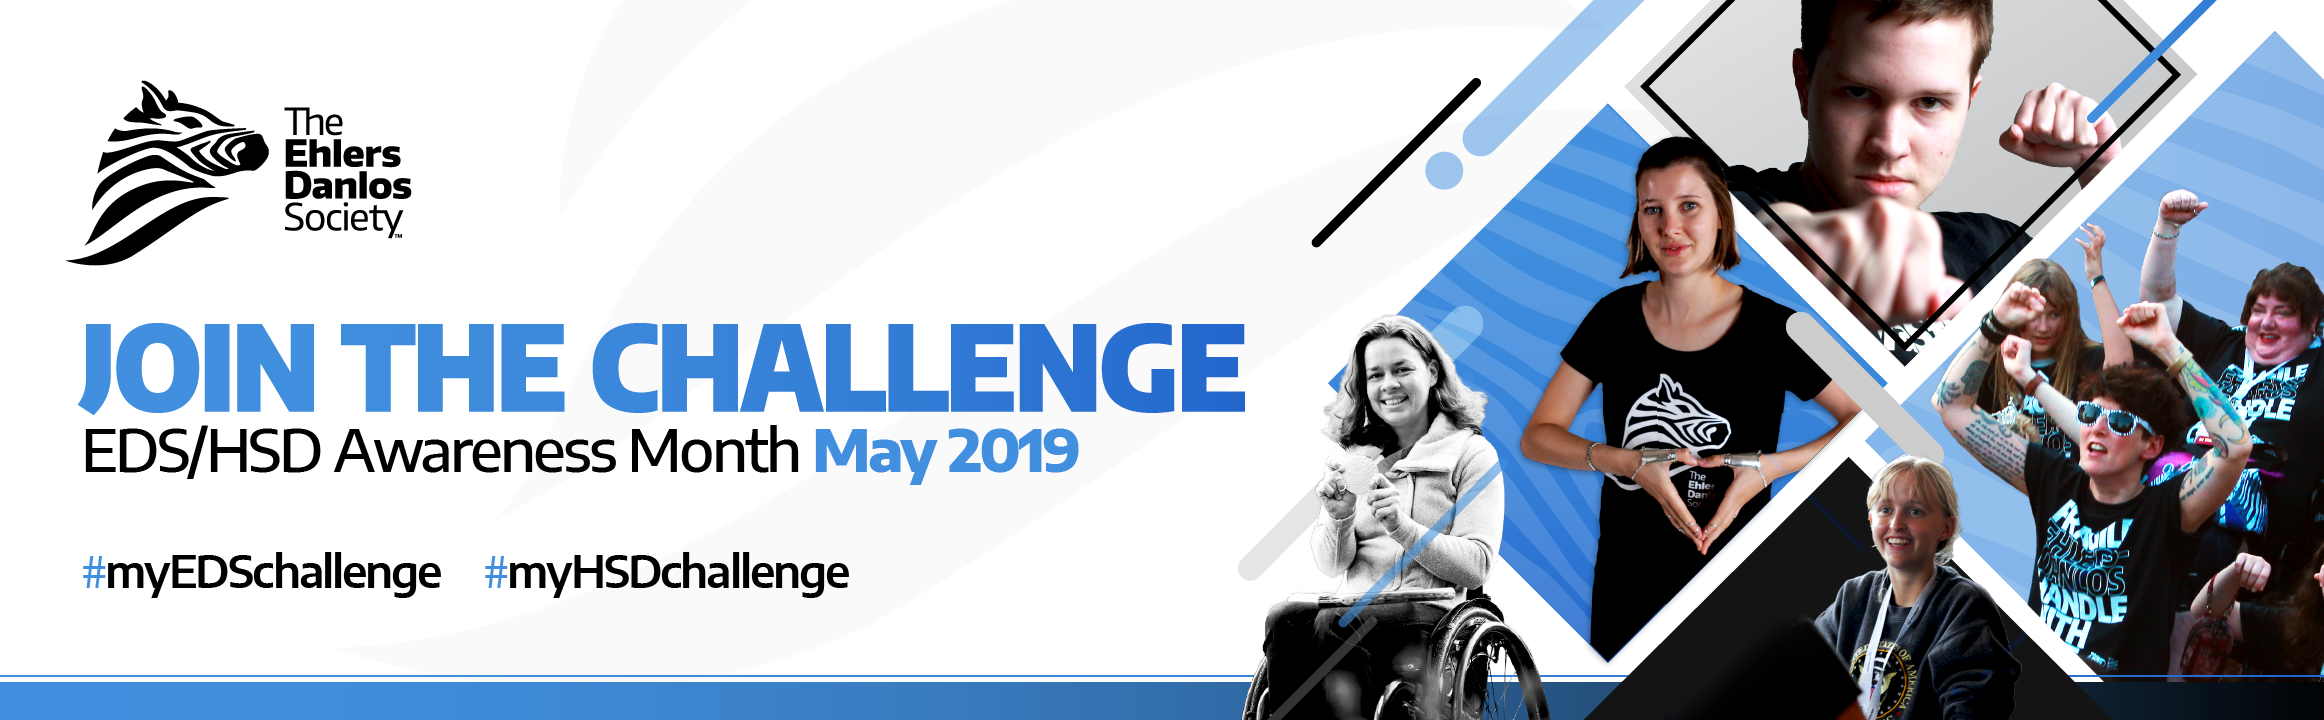 Join the Challenge 2019